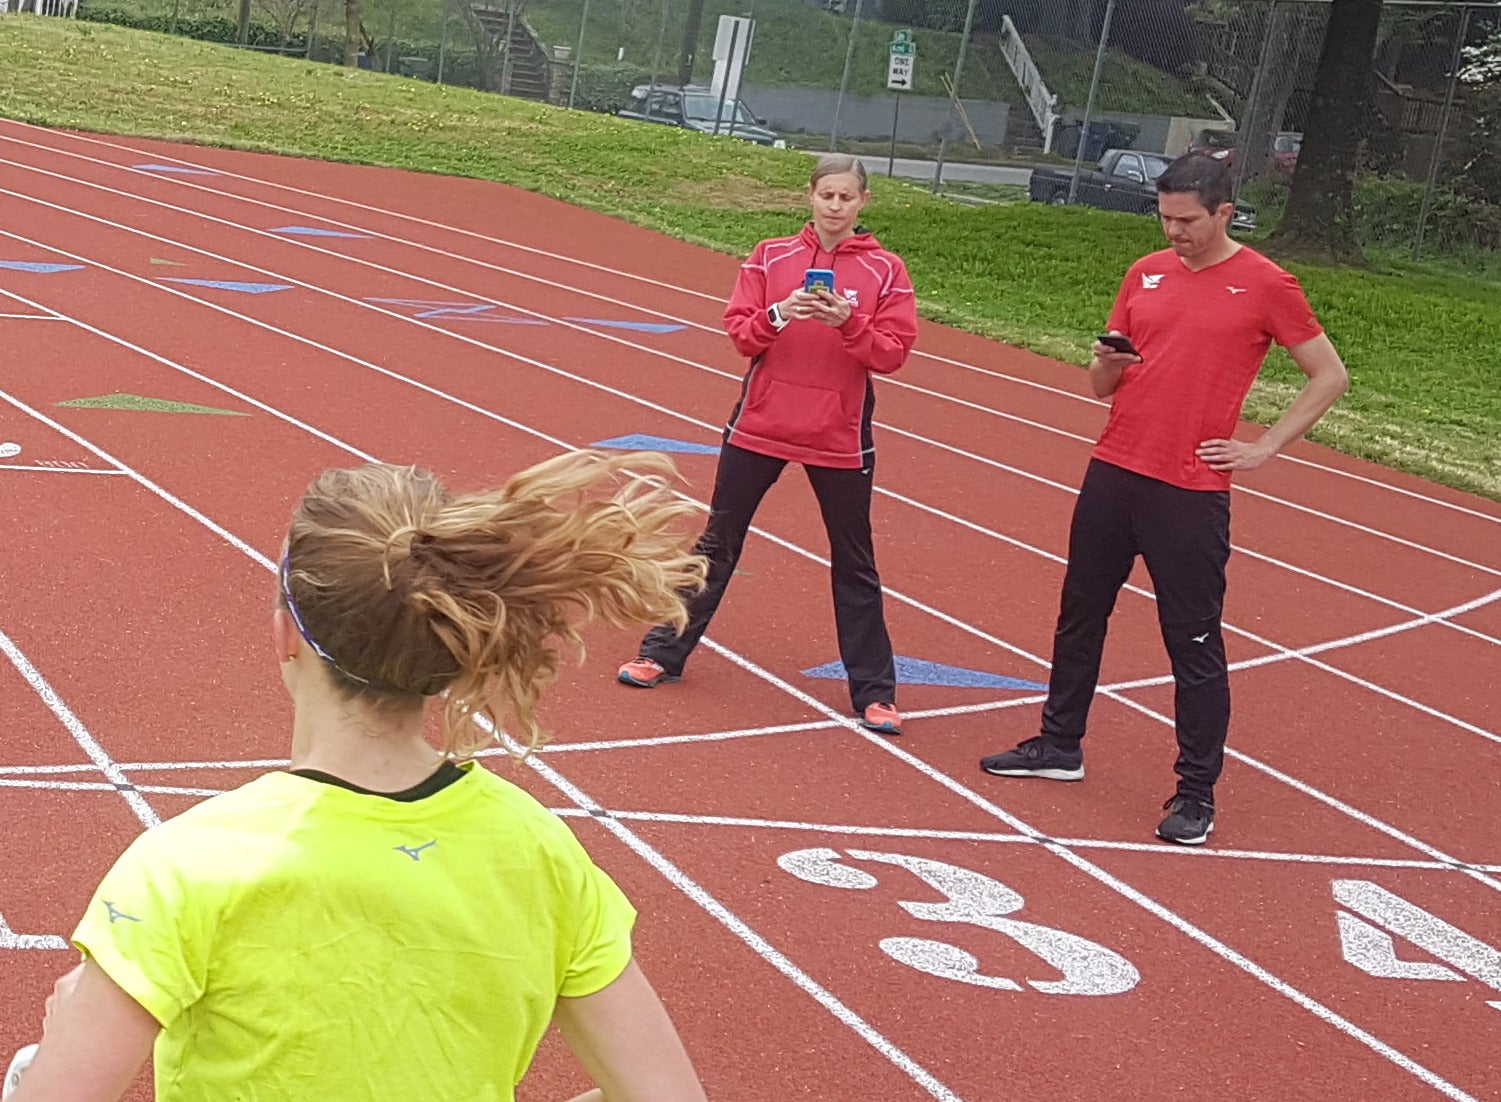 Amy and Andrew Begley coach the Atlanta Track Club, using their past experiences to inform their strategies.